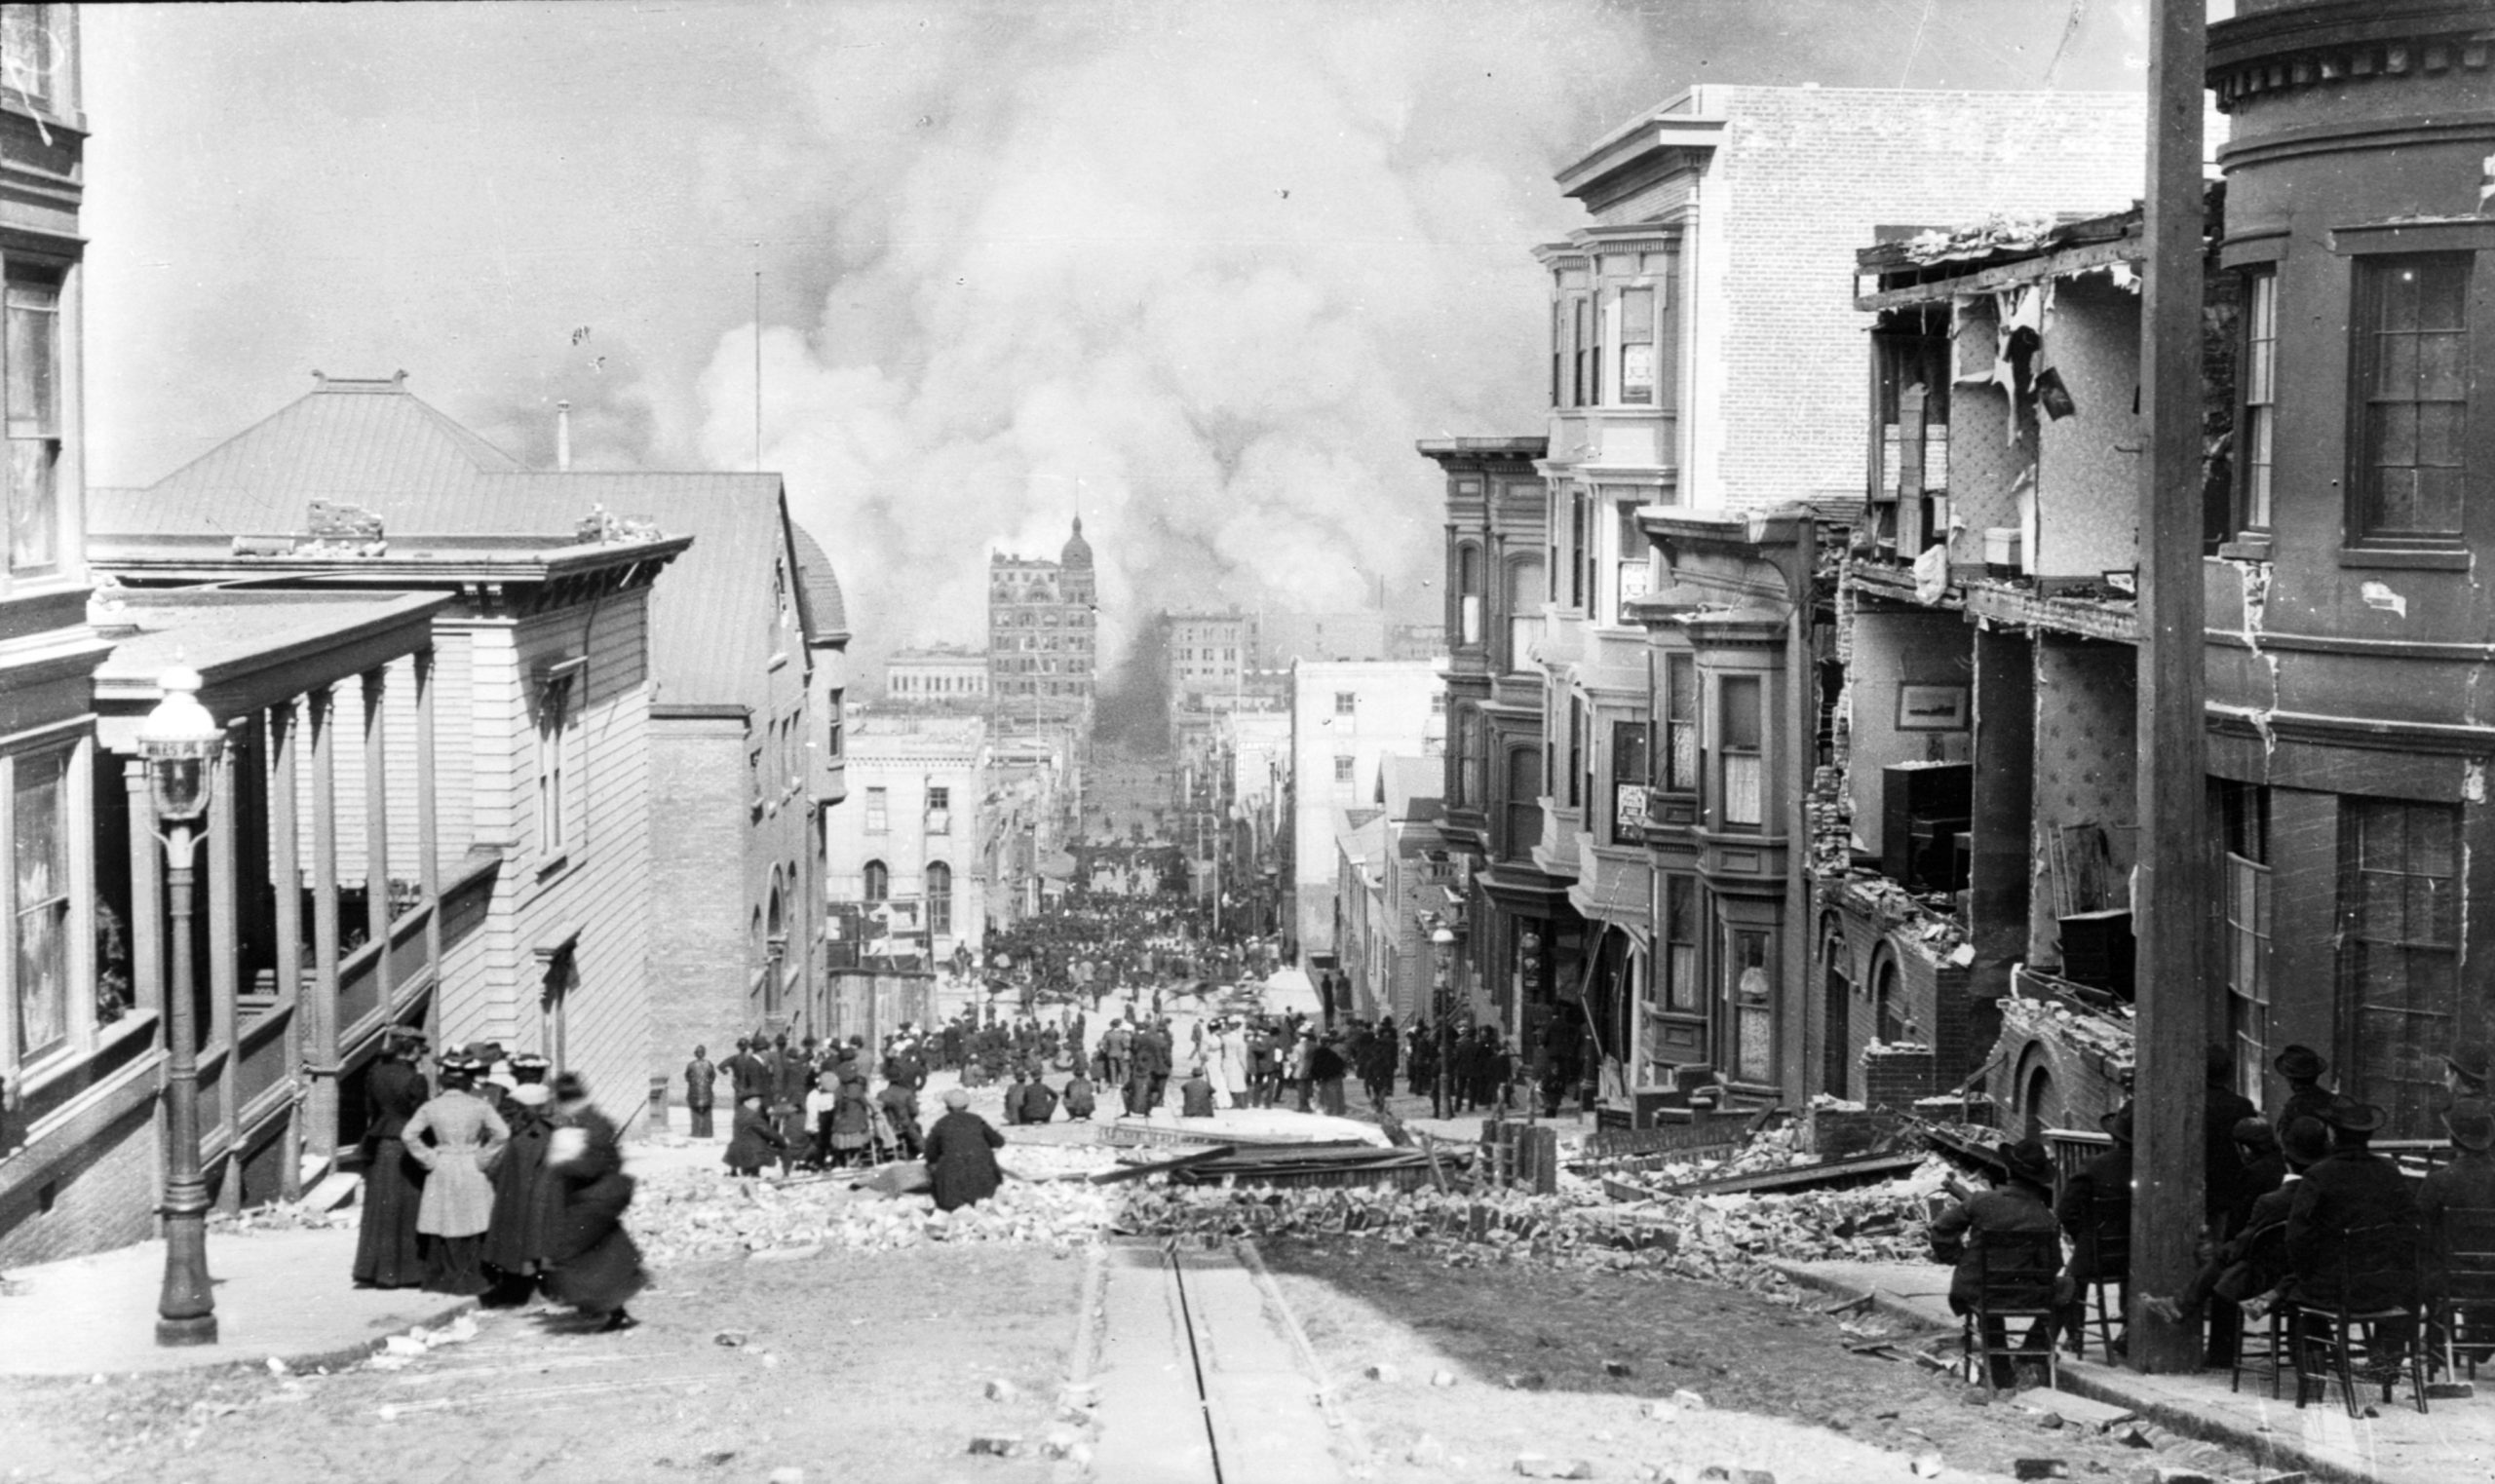 A shot of the destruction following the San Francisco earthquake in 1906